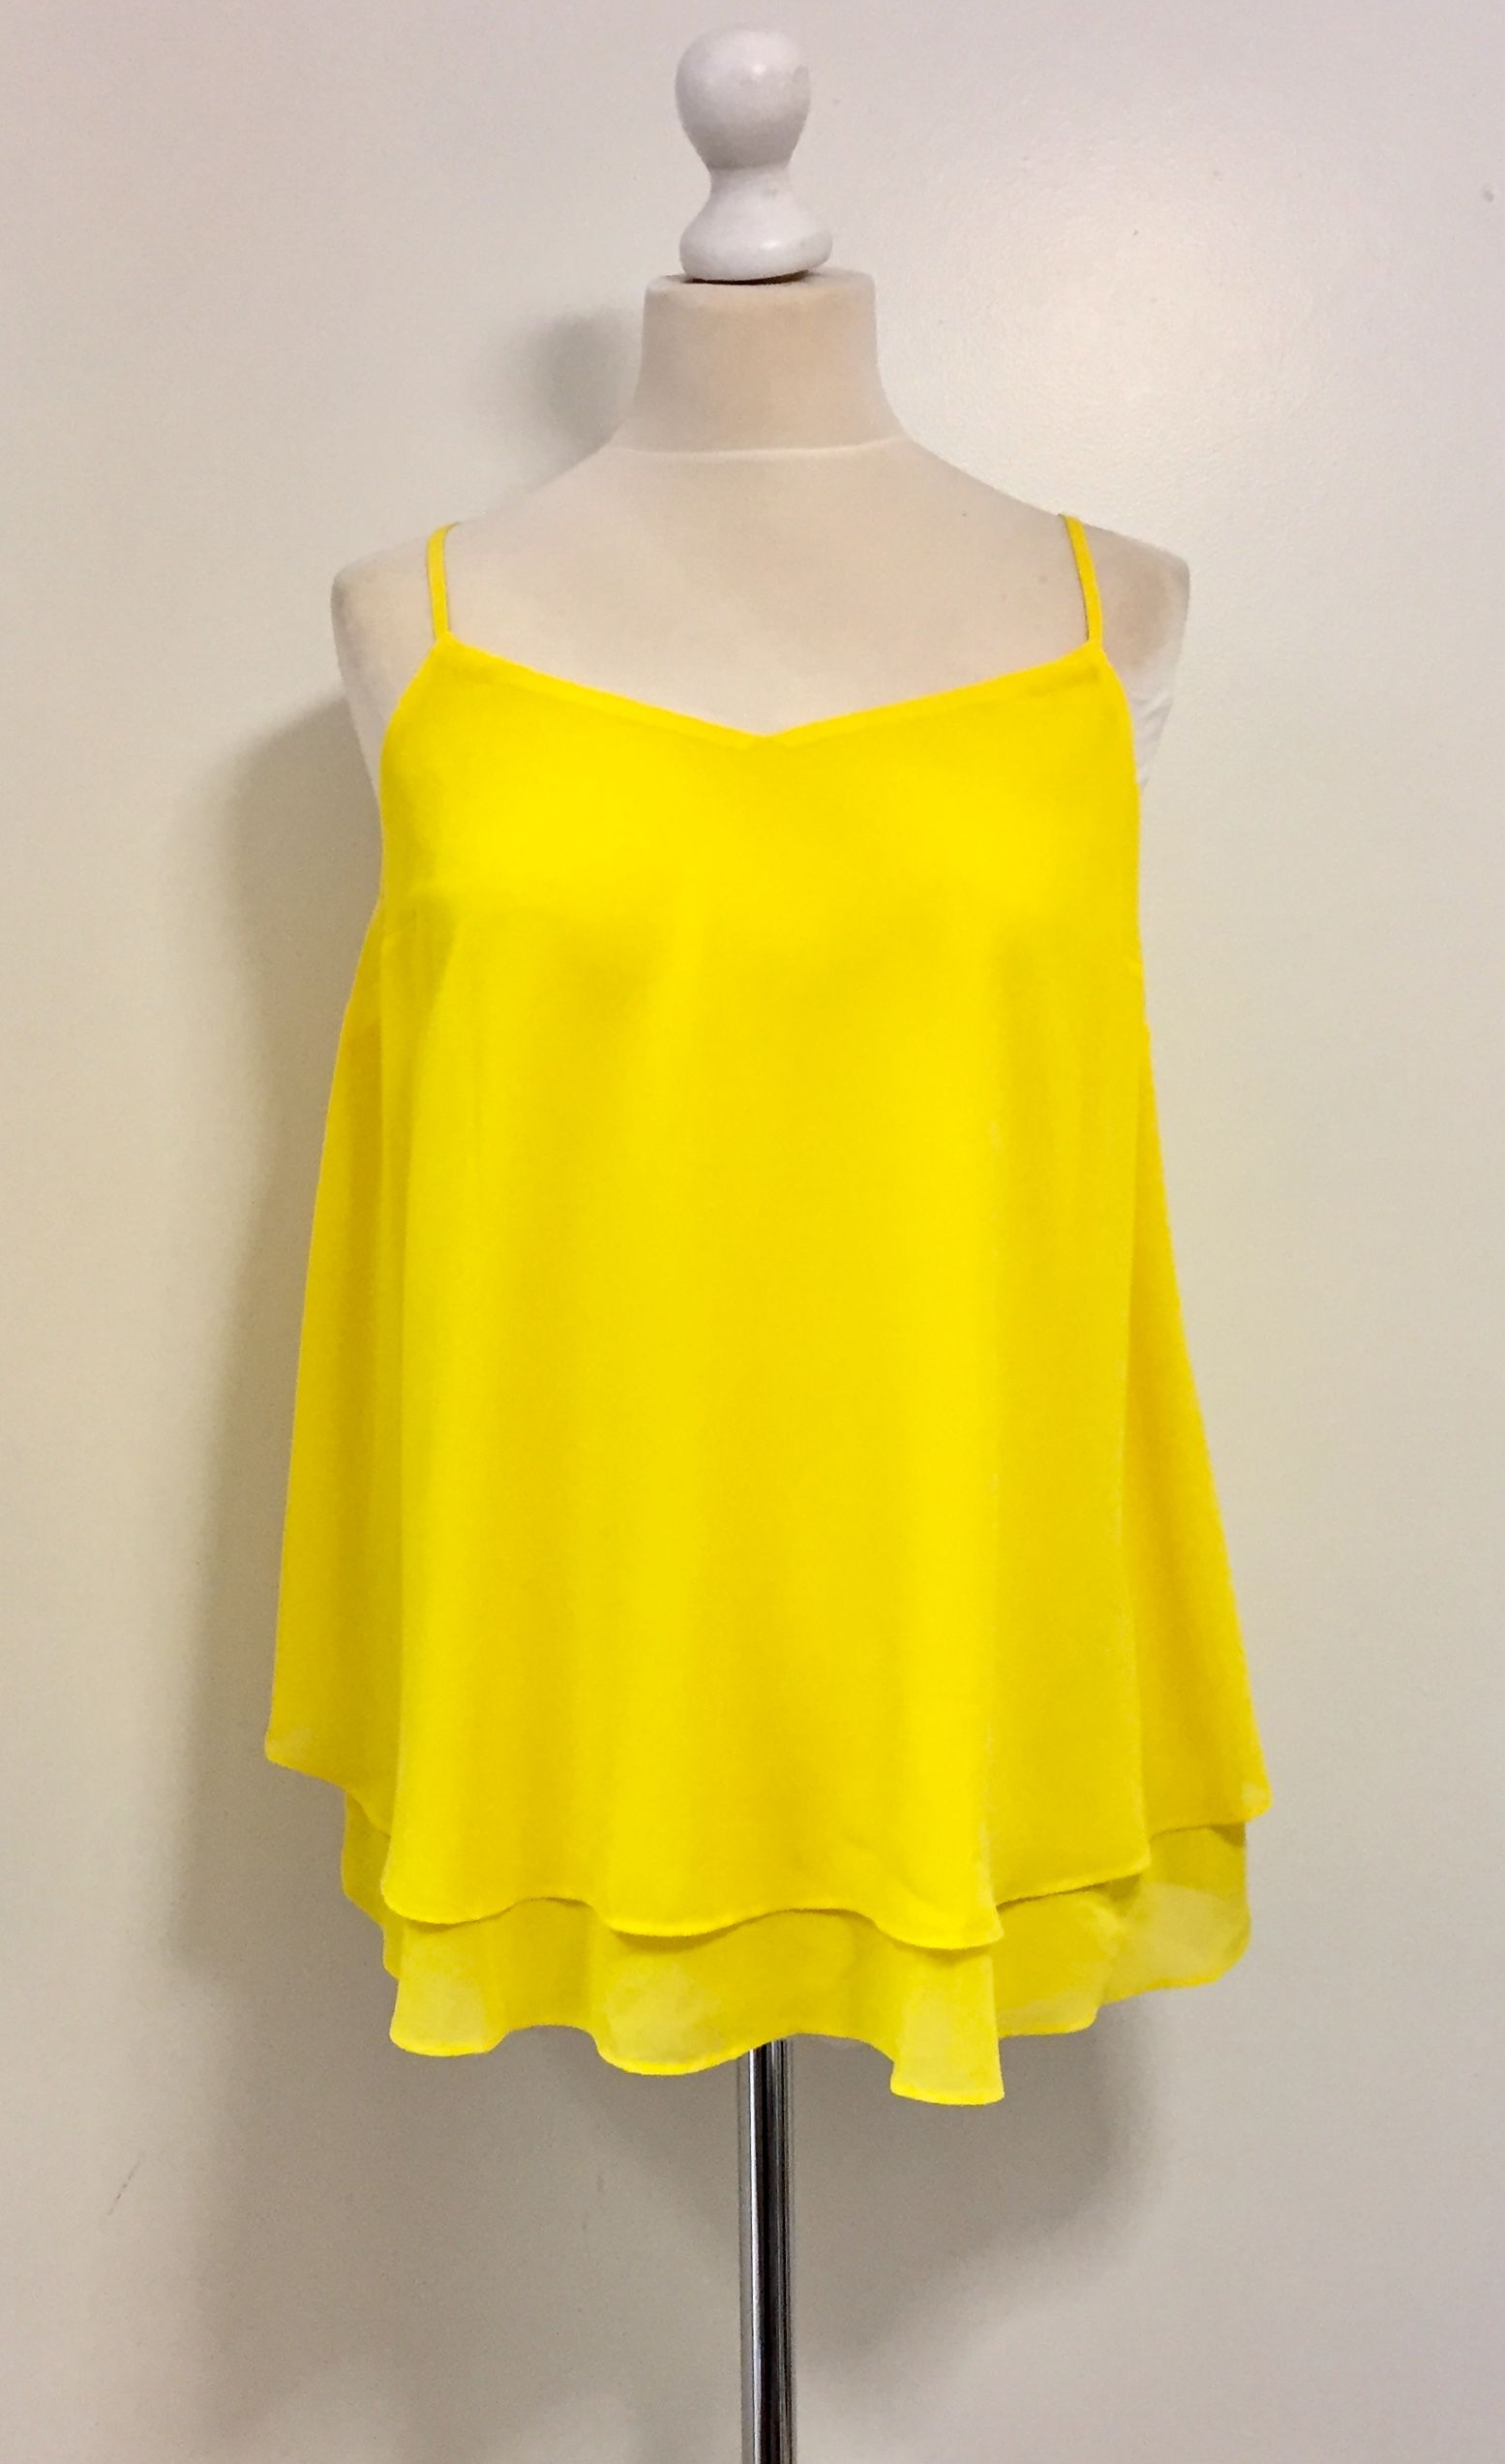 NEW LOOK Bright Yellow Maternity Camisole Top NWOT